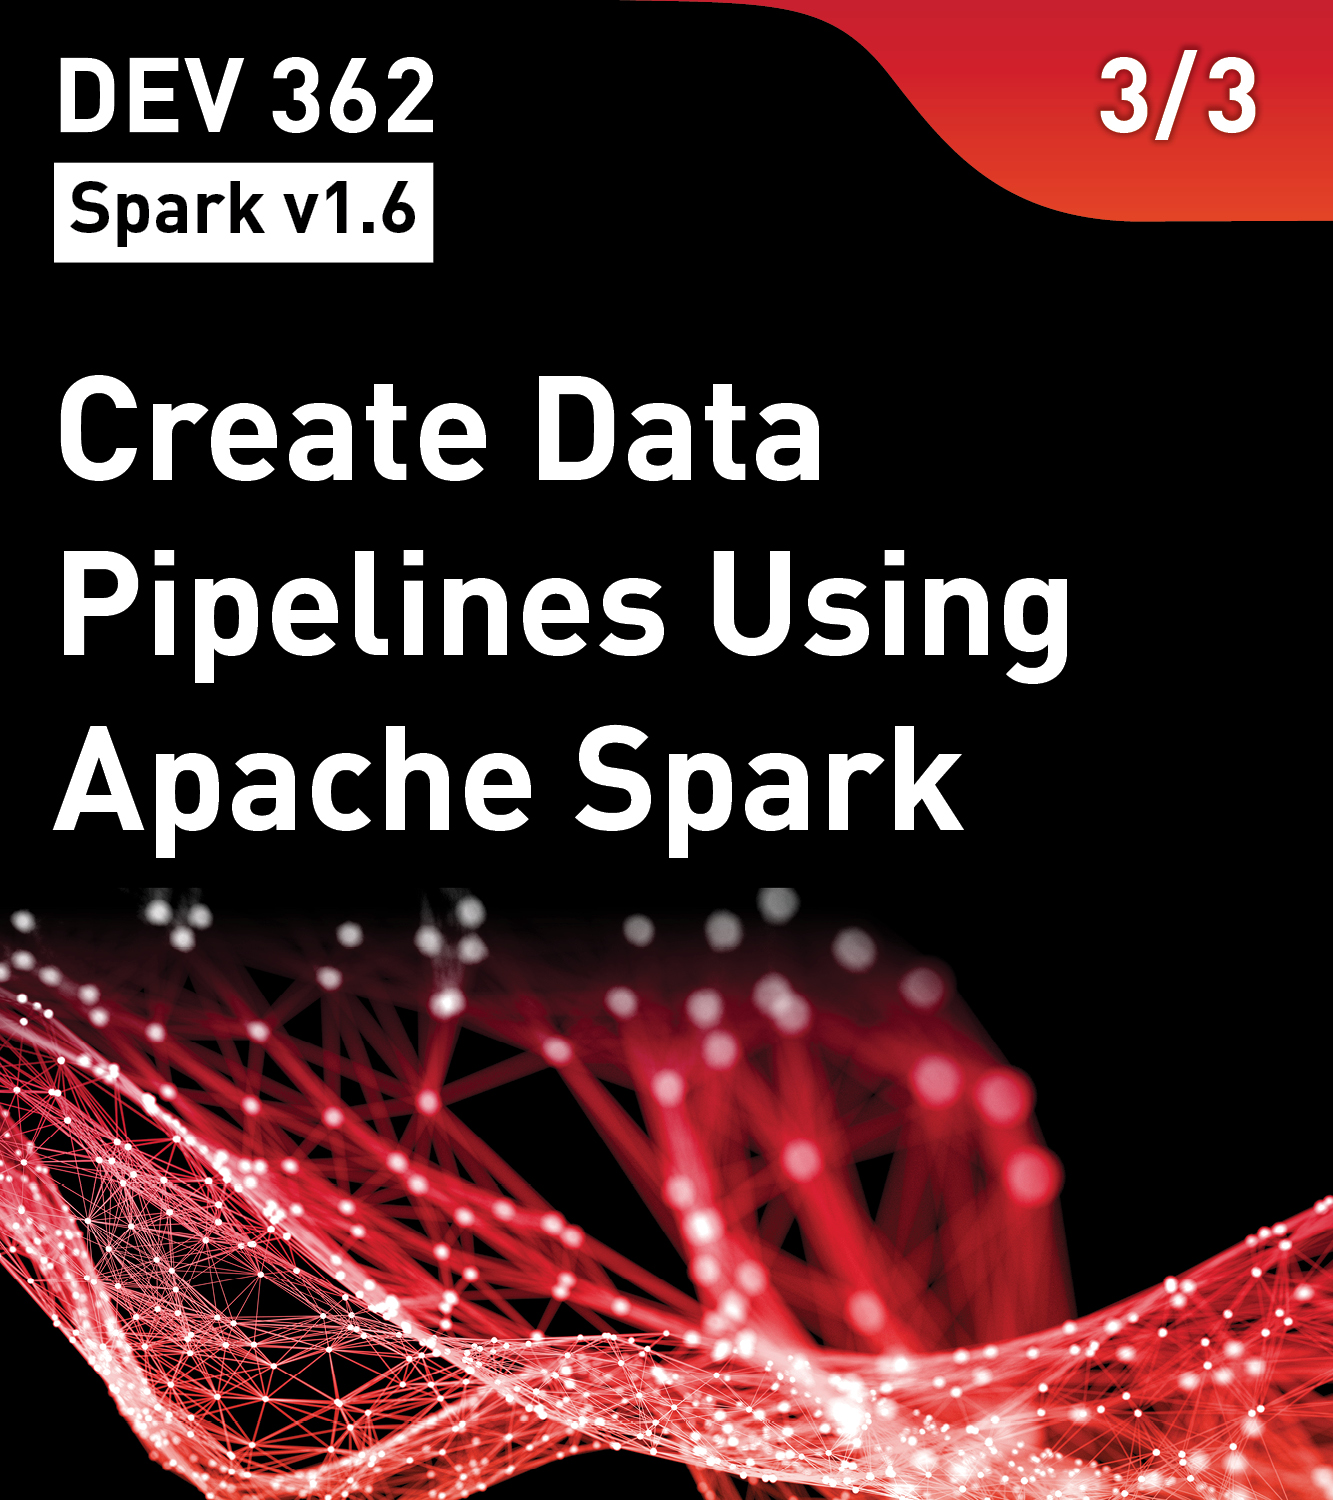 DEV 362 - Create Data Pipelines Using Apache Spark (Spark v1.6)